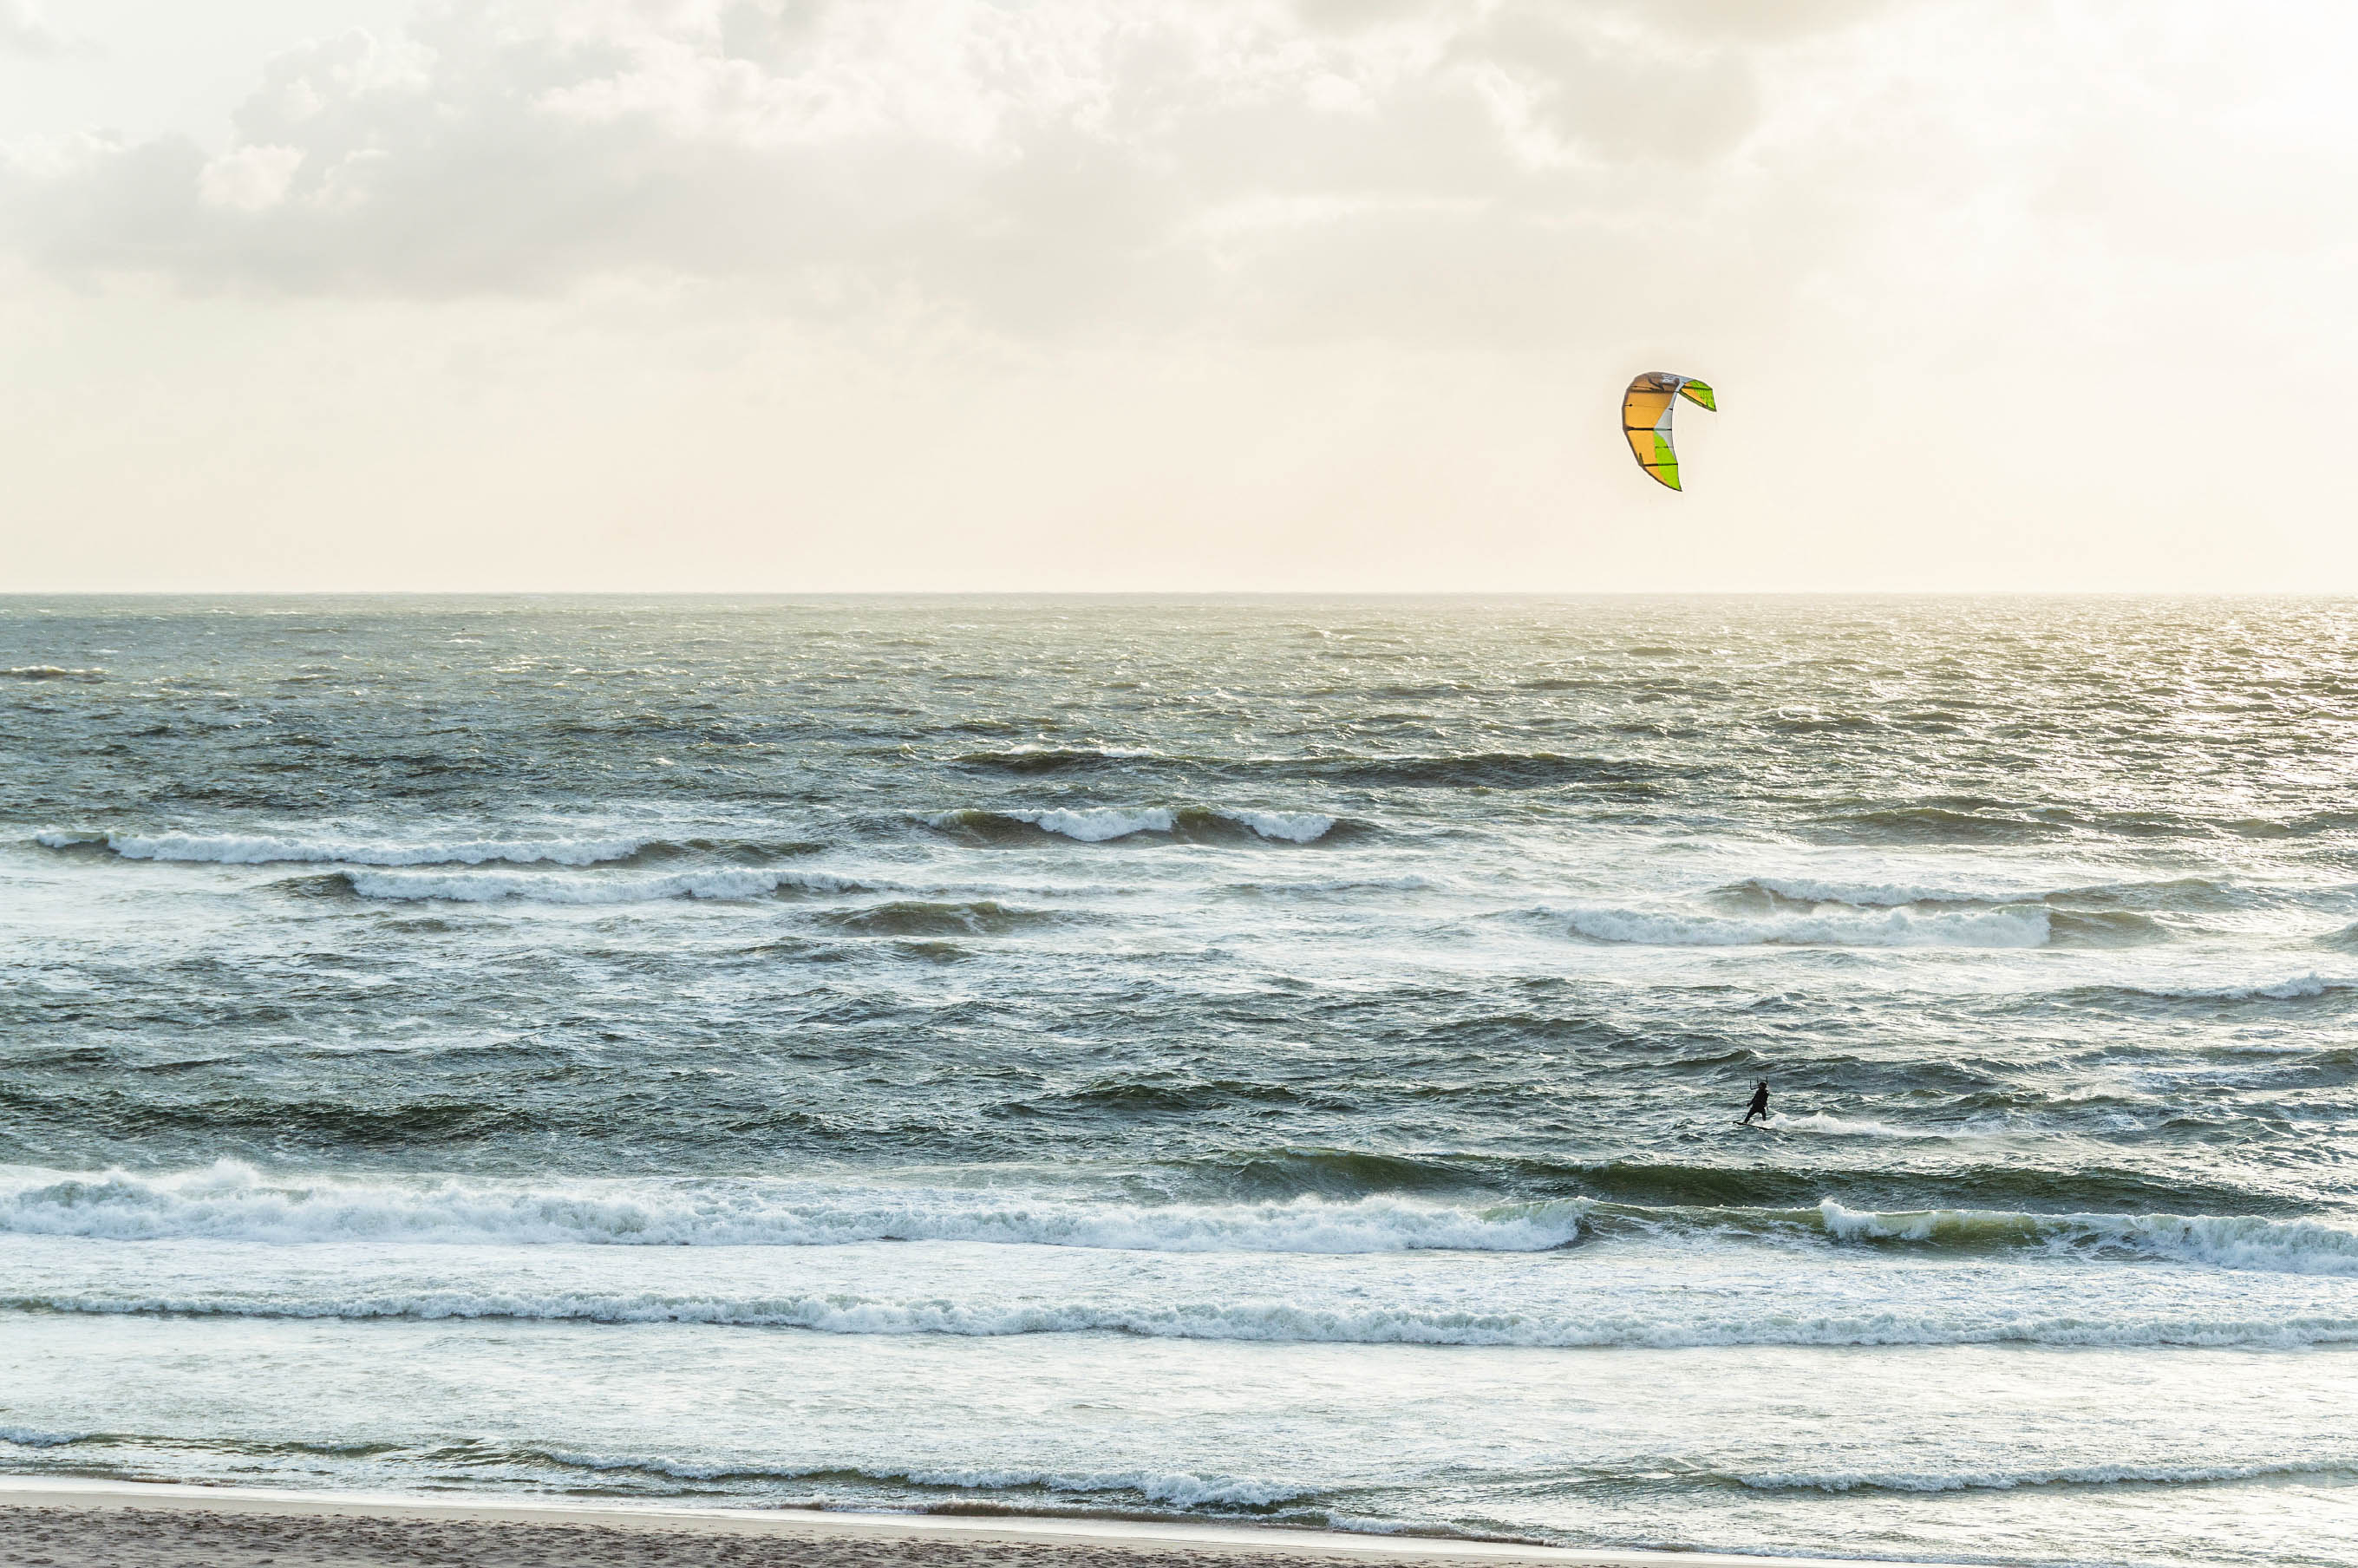 Kite Surfing in Italien, Surfspots in Europa